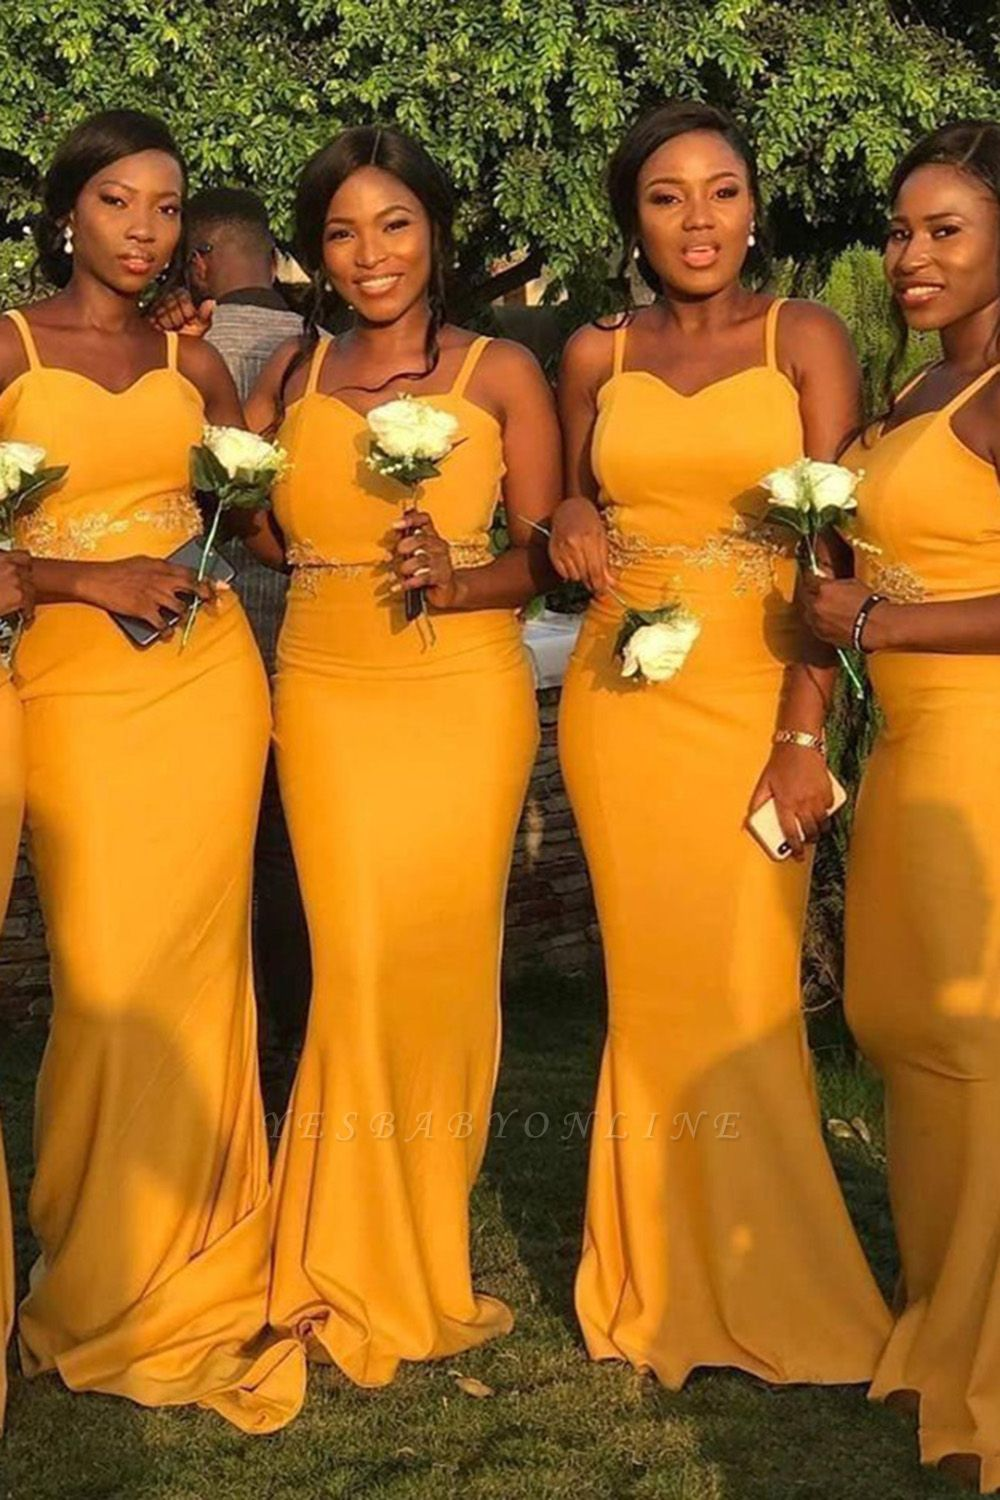 Spaghetti Straps Long Sexy Fitted Bridesmaid Dresses   Elegant Wedding Guest Dresses